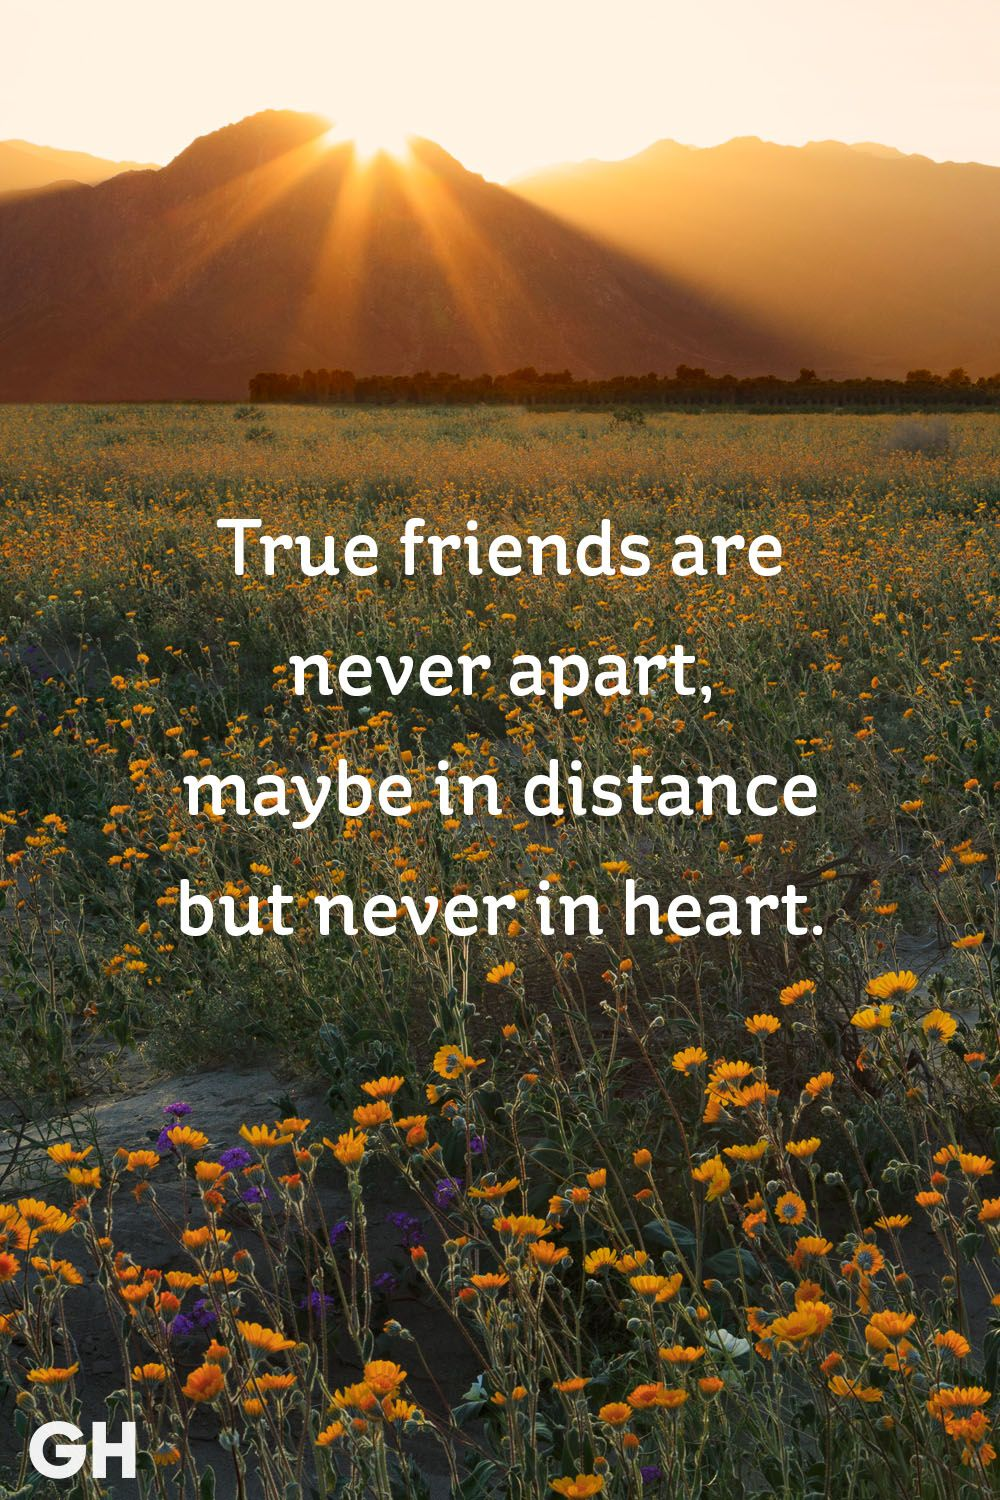 Quotes About Friends | 25 Short Friendship Quotes For Best Friends Cute Sayings About Friends